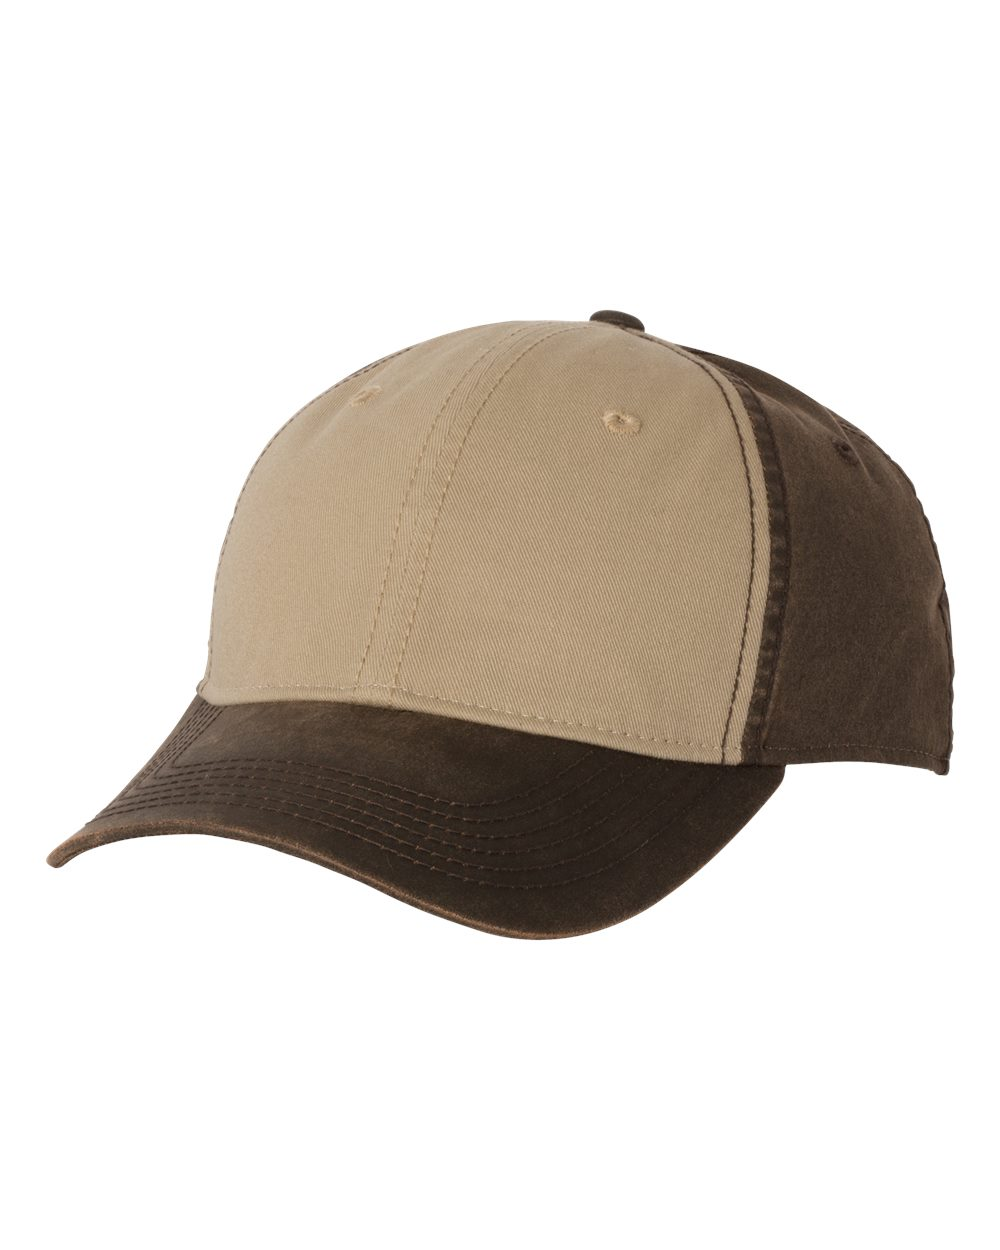 DRI DUCK 3701 - Colorblock Cap